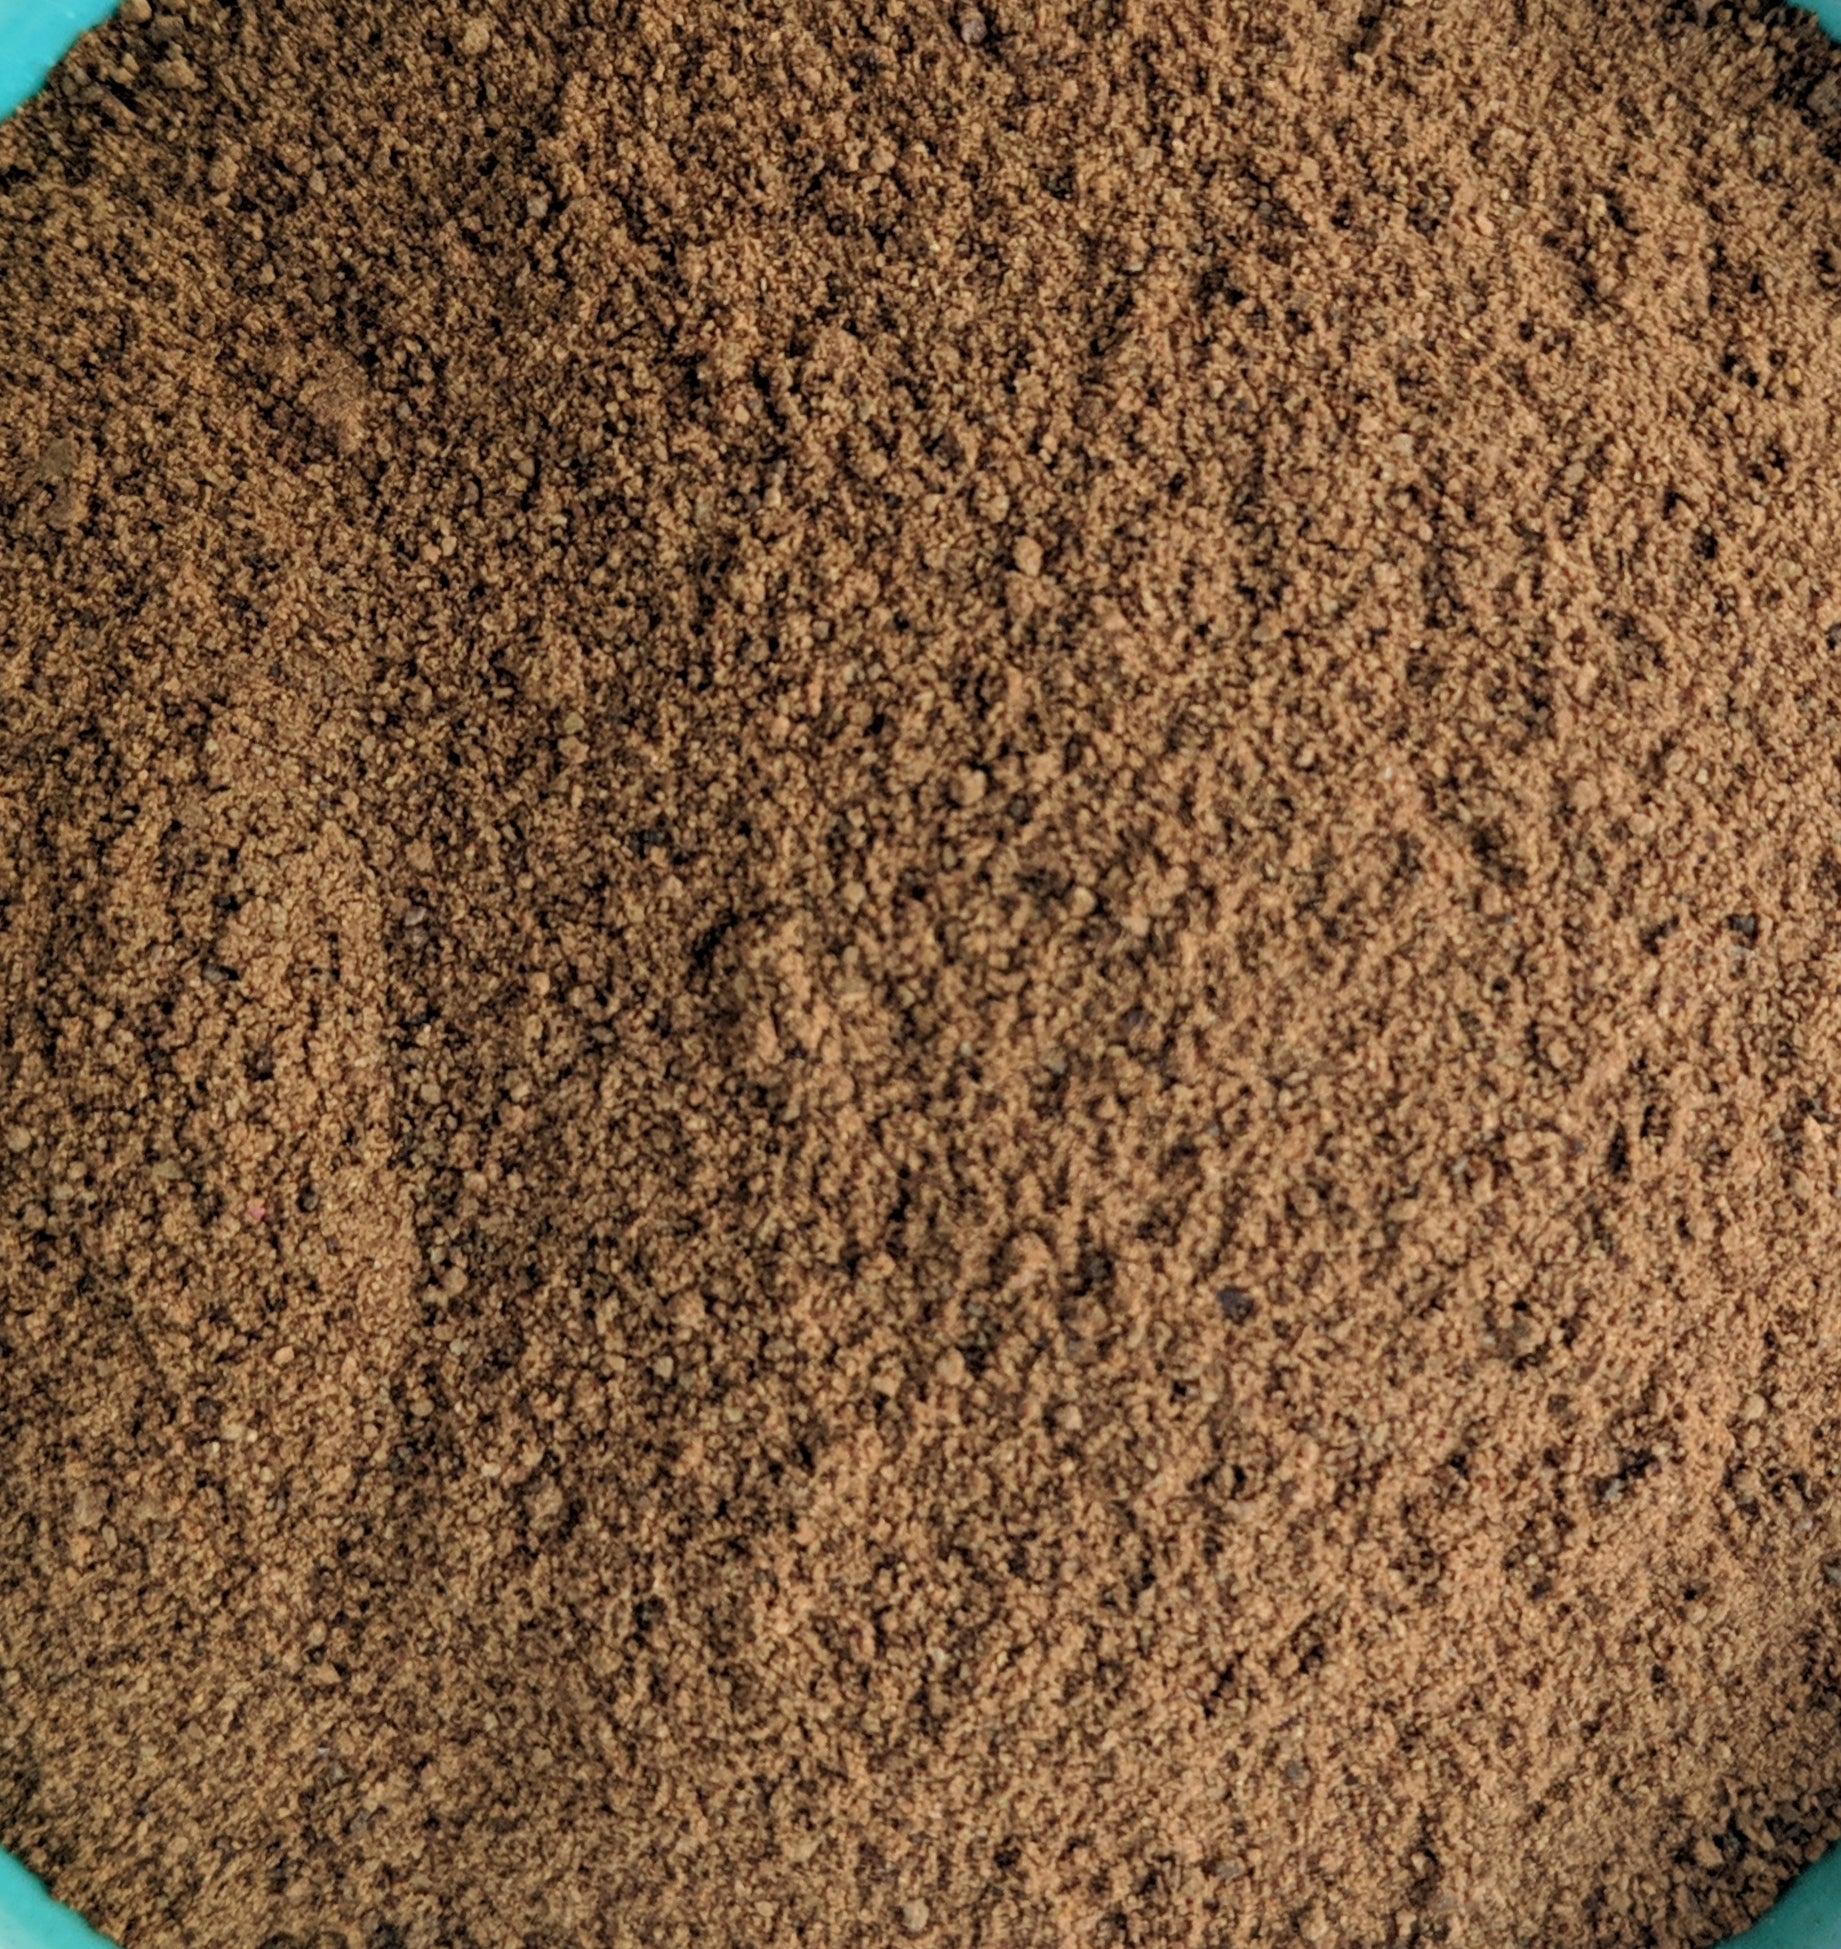 Allspice (ground/powder)